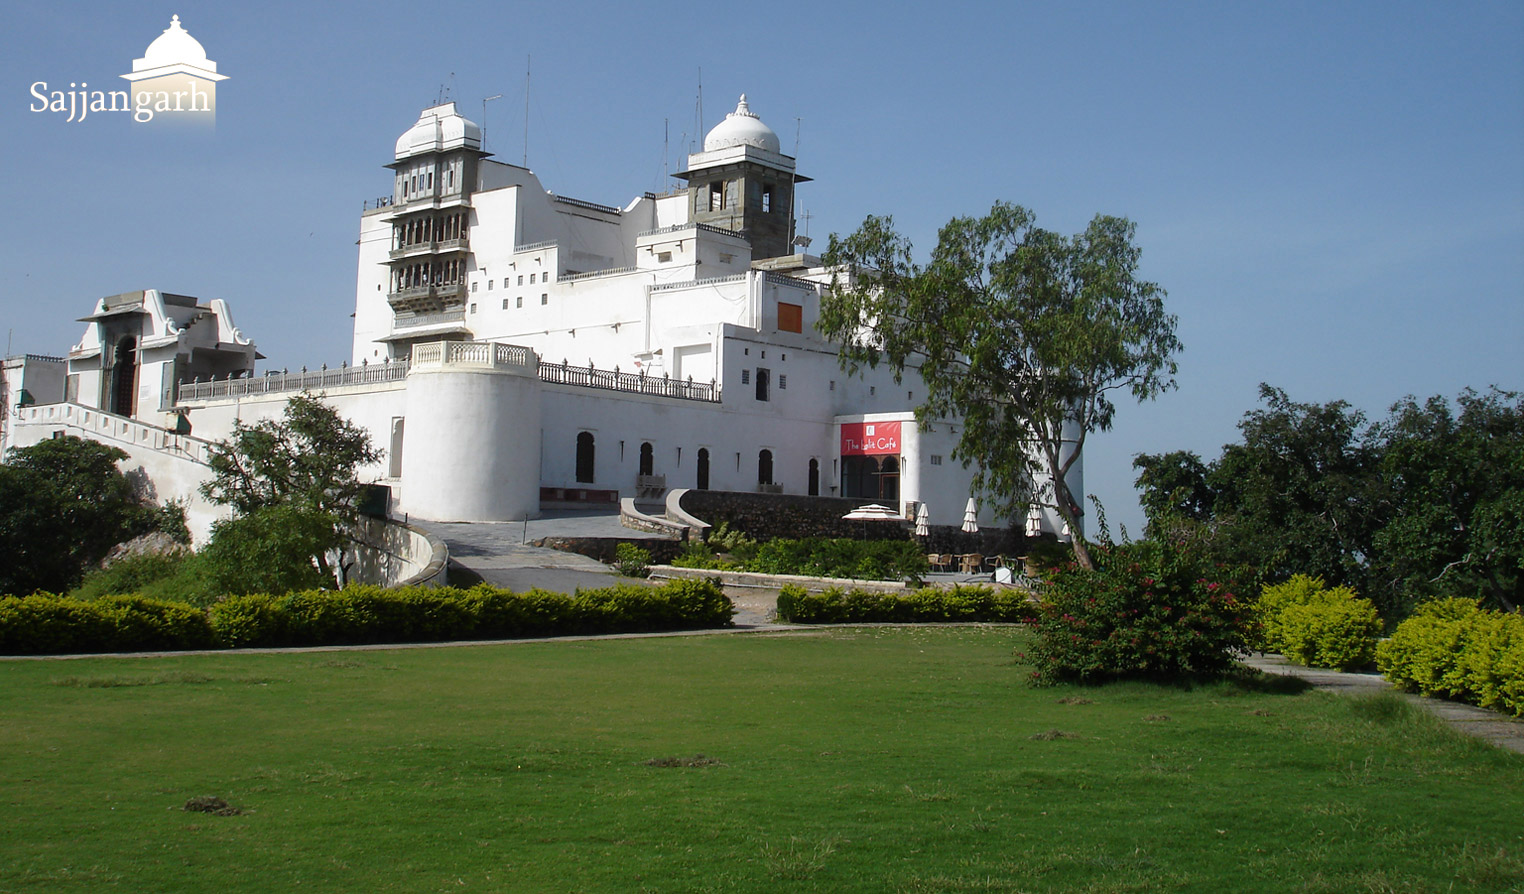 Sajjangarh - The Monsoon Palace